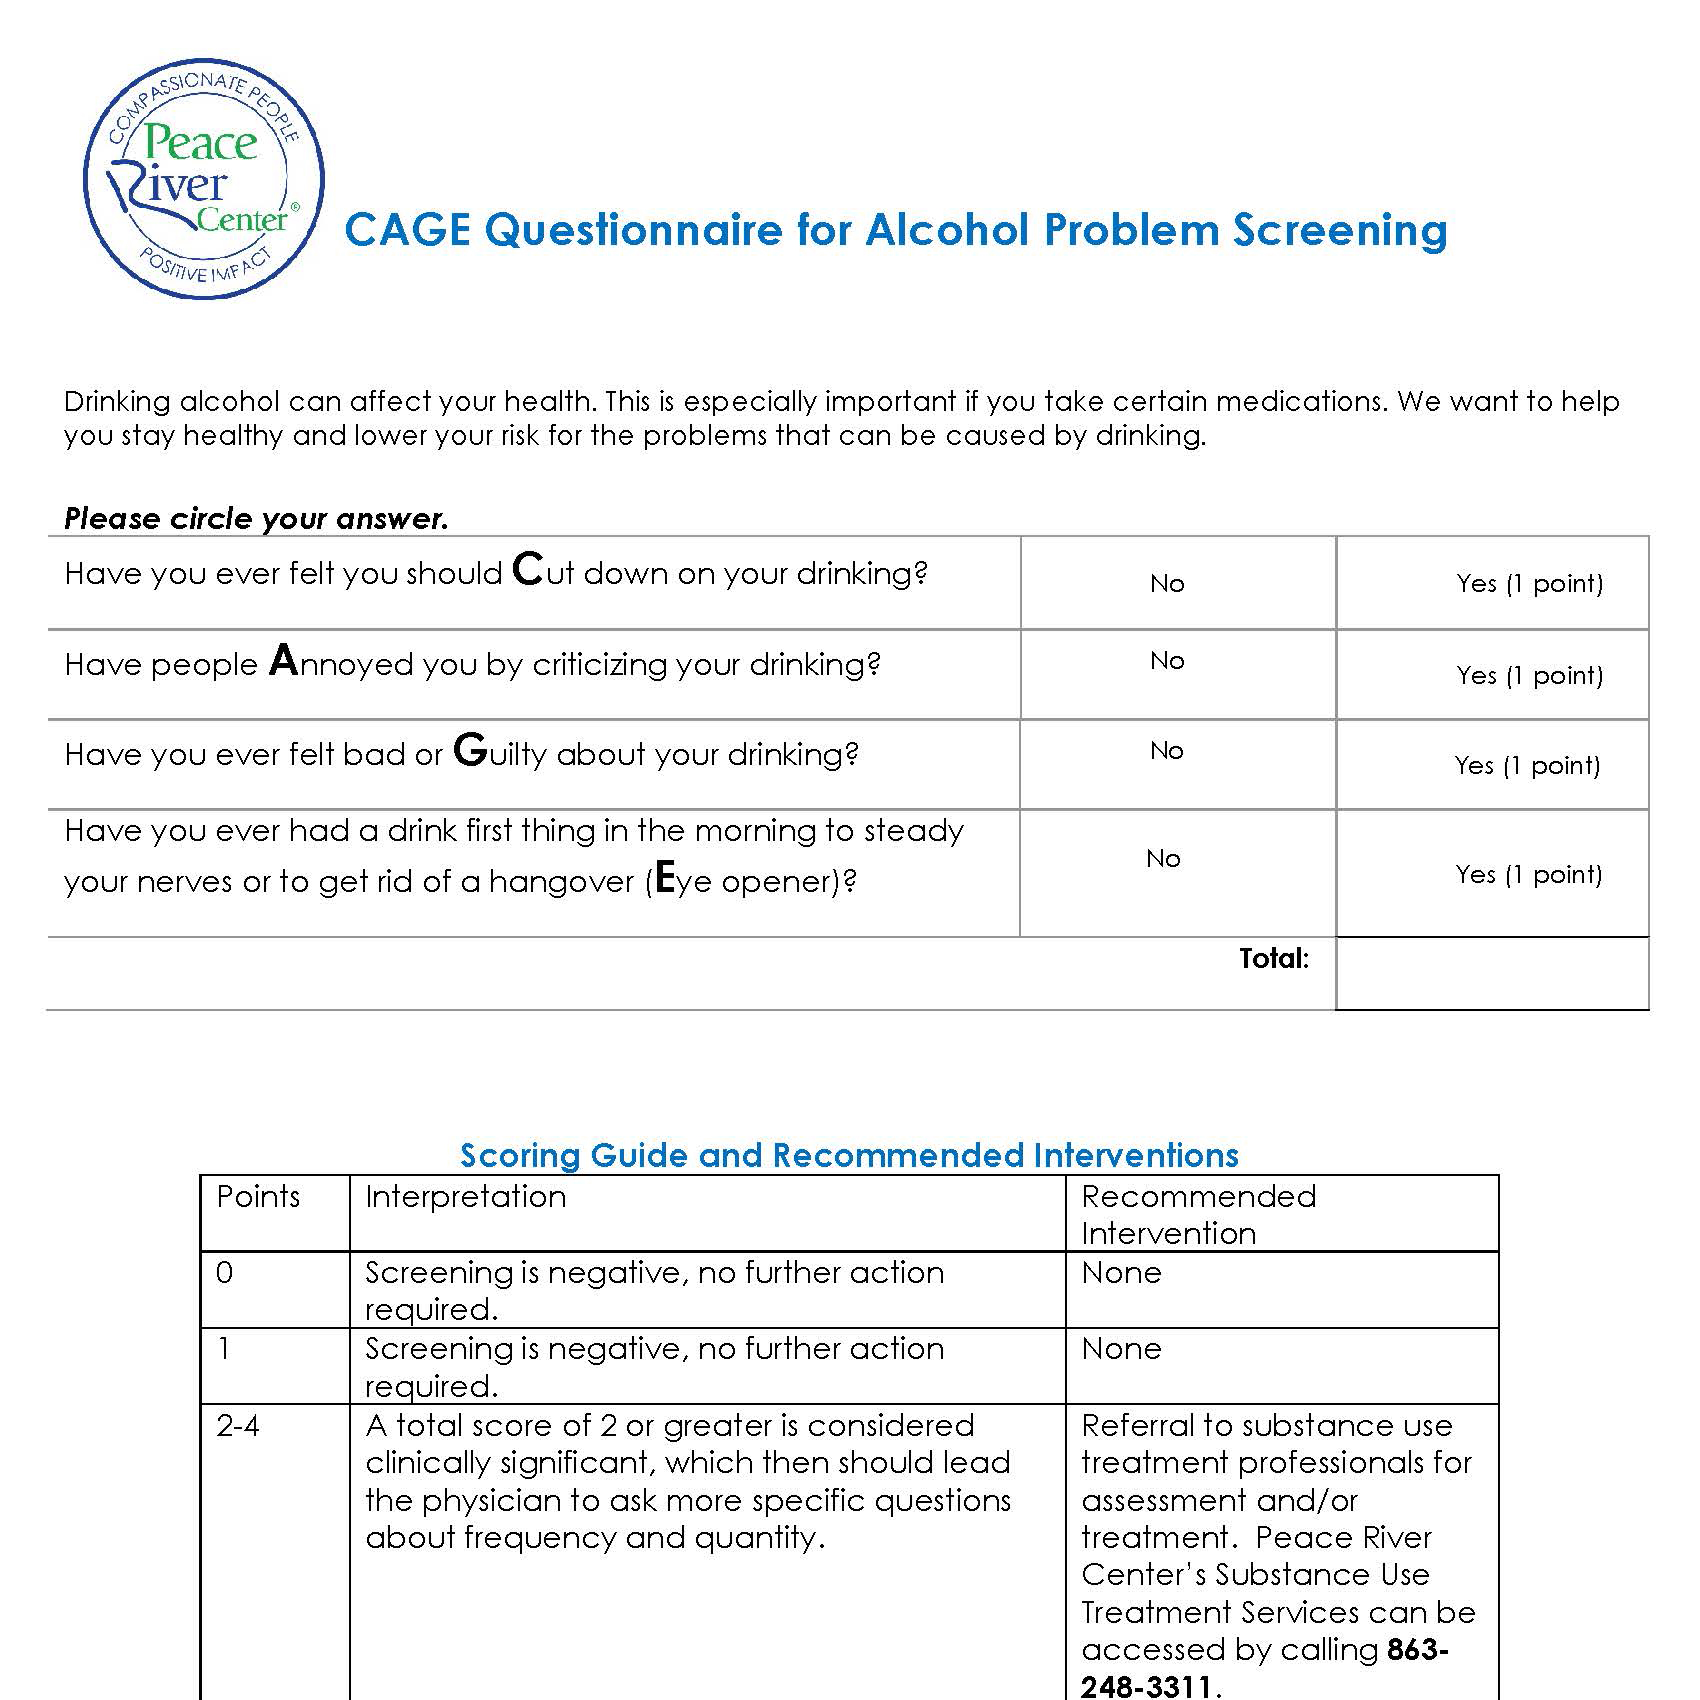 CAGE Substance Abuse Screening form image